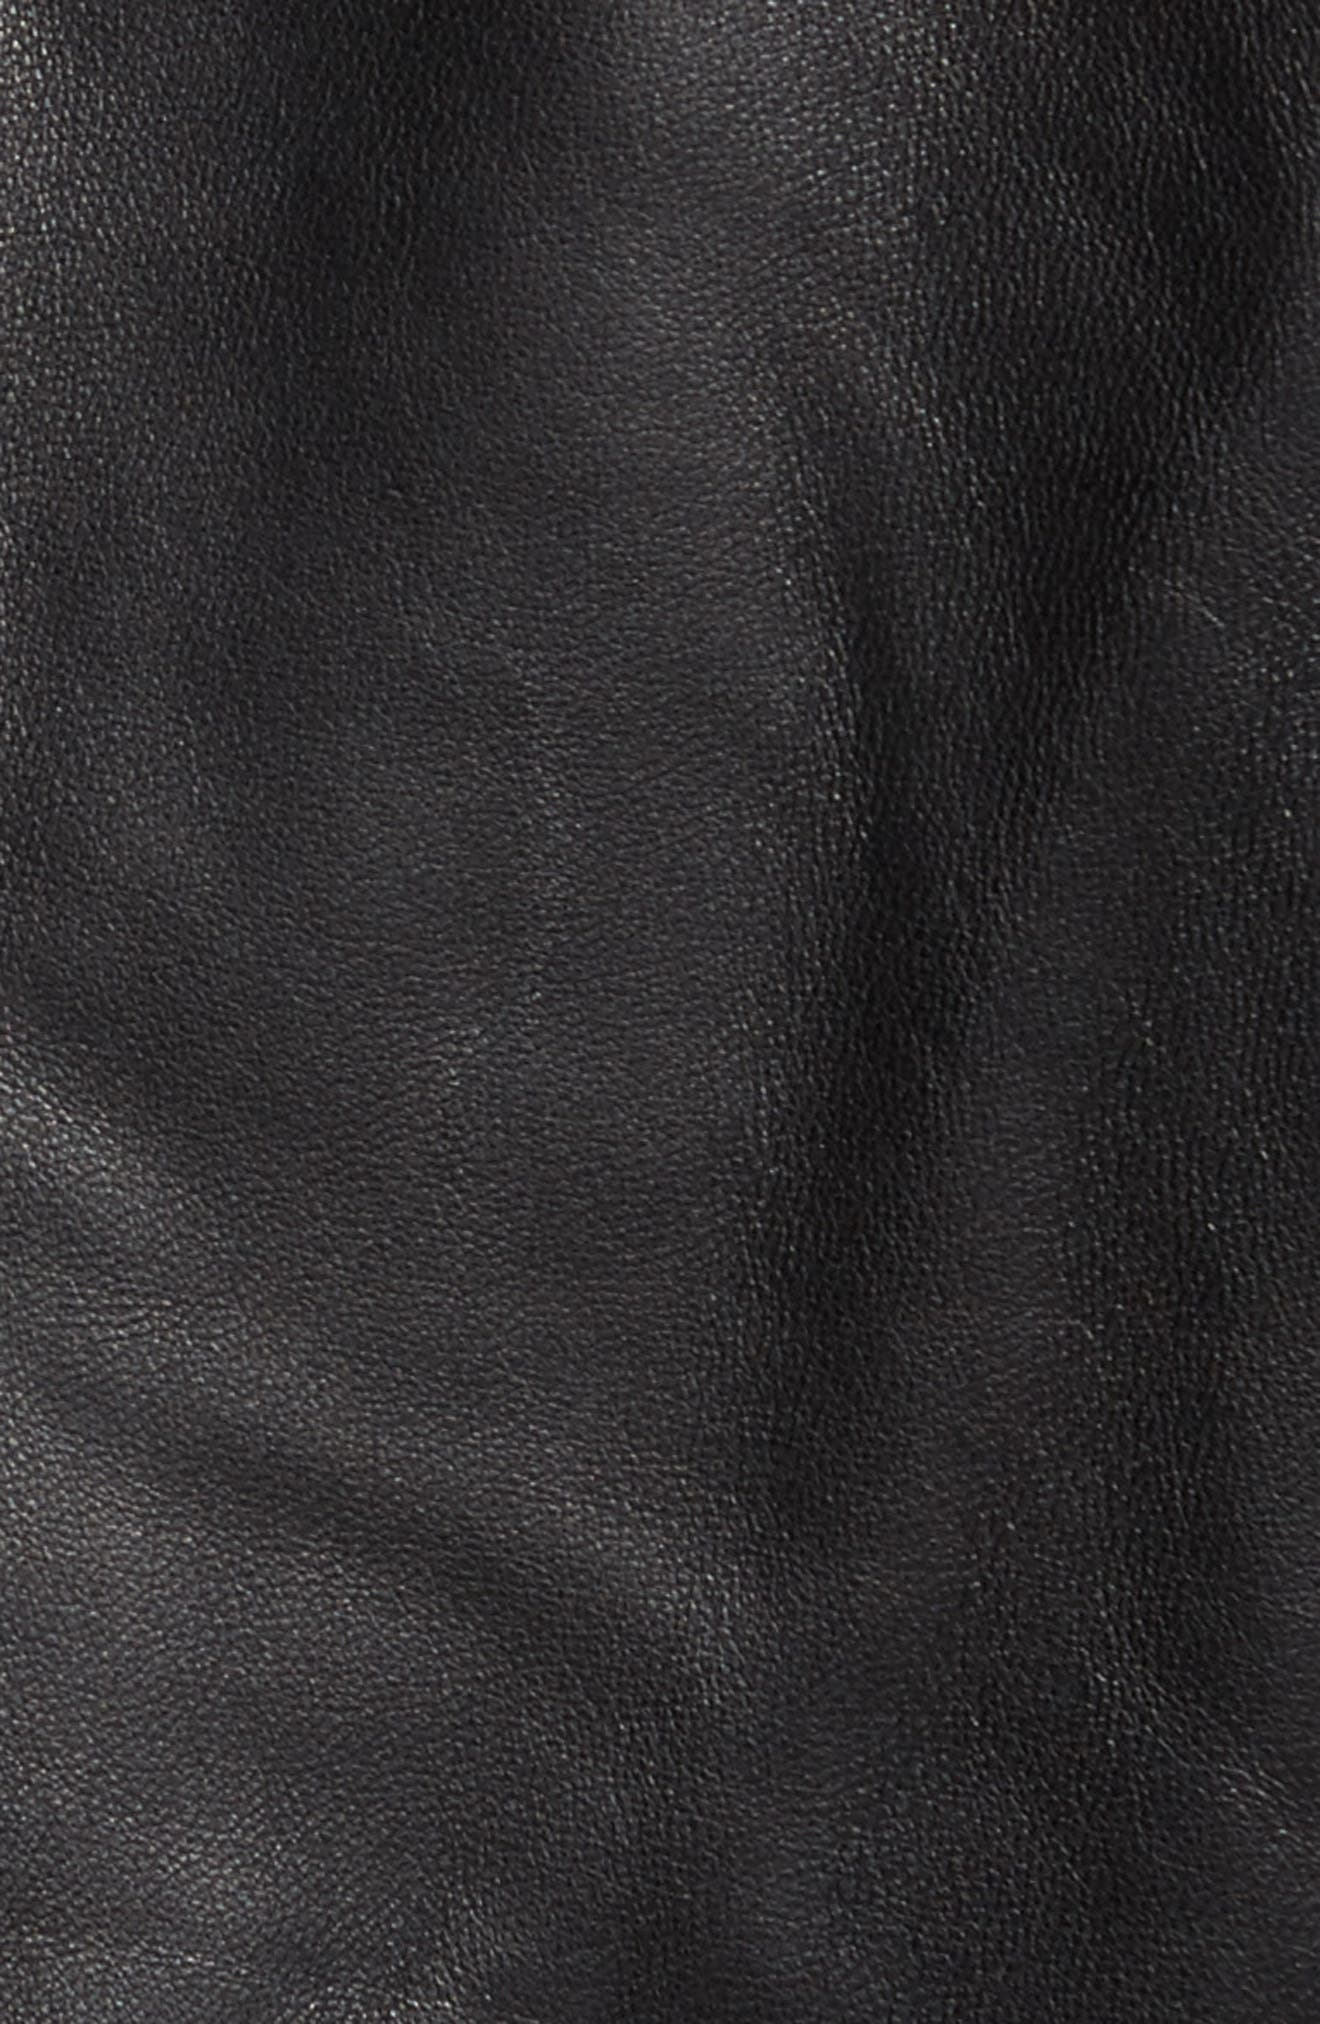 Lambskin Leather Down Jacket with Genuine Shearling Collar,                             Alternate thumbnail 5, color,                             001